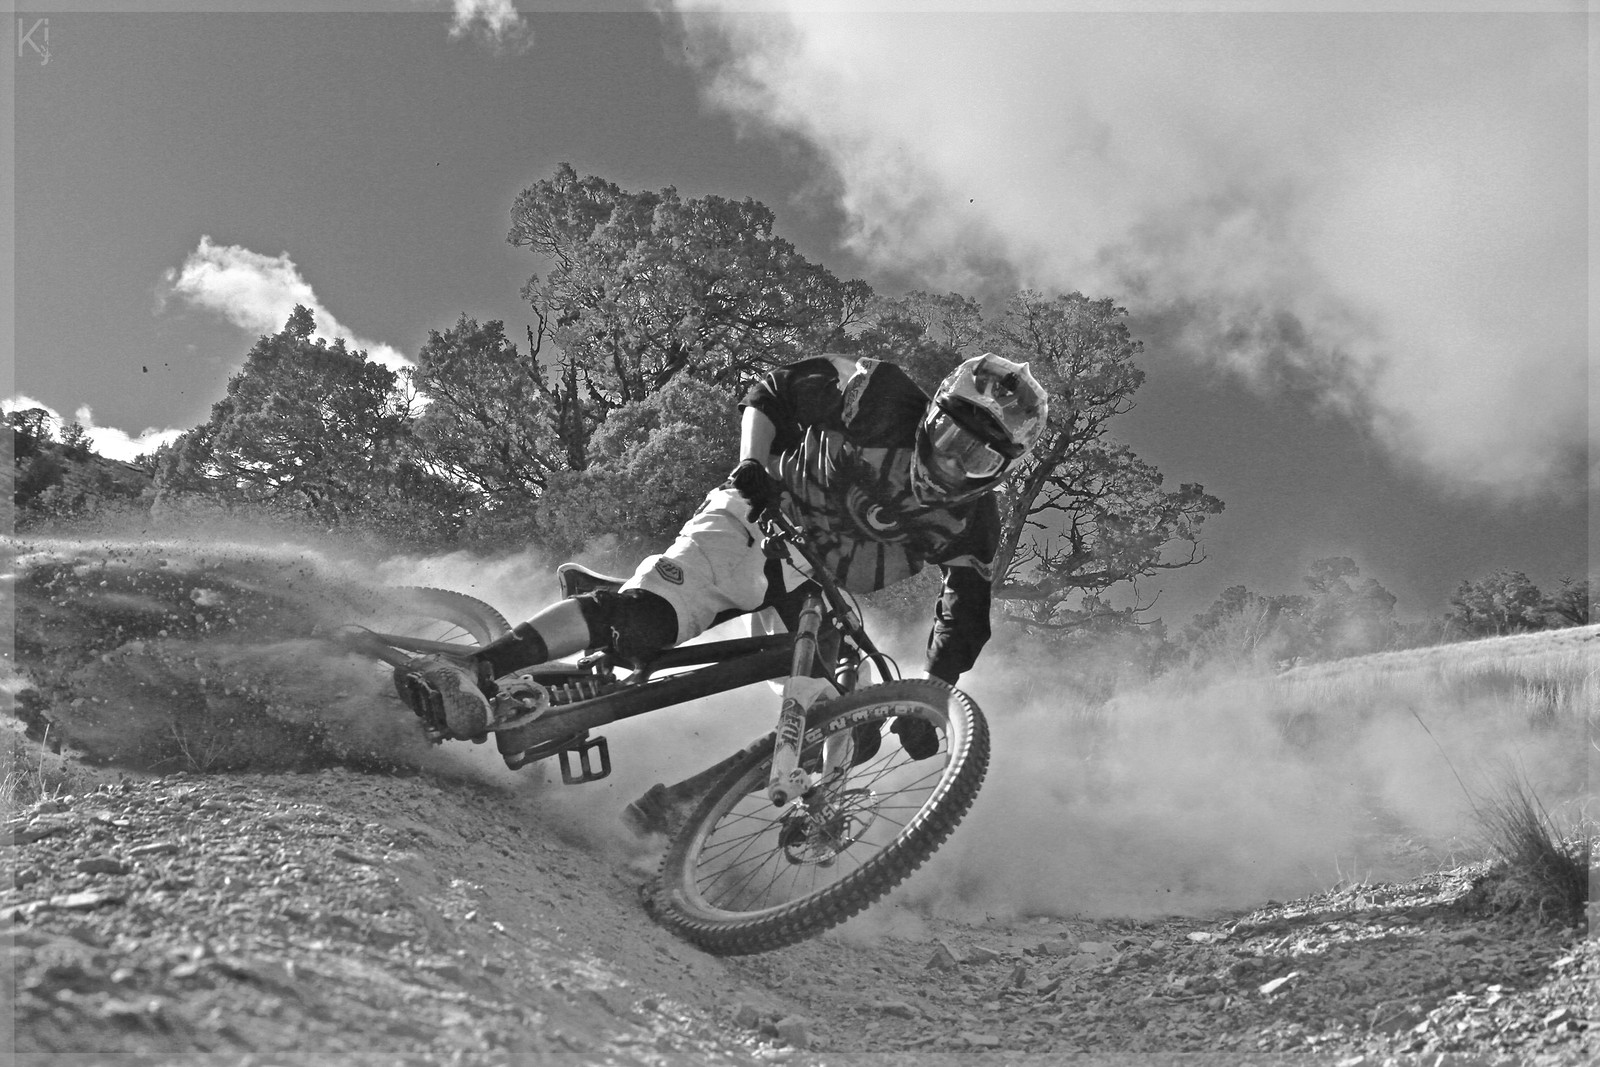 KillTrail  - norcalproductions - Mountain Biking Pictures - Vital MTB